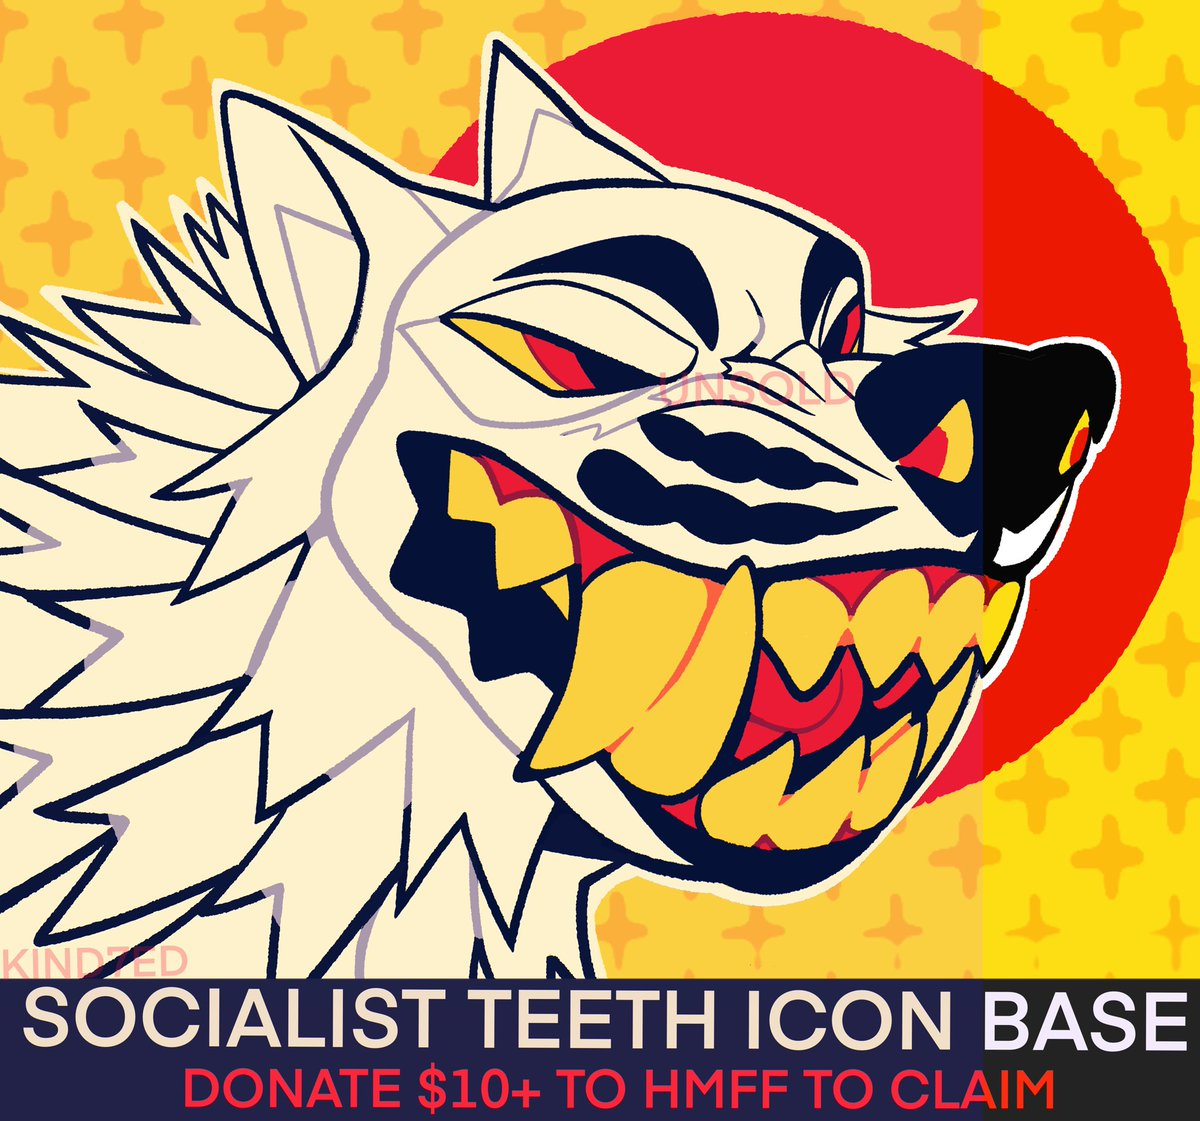 SOCIALIST TEETH ICON BASE  DONATE $10+ to @HMFURFEST TO CLAIM [DM ME PROOF OF DONATION AND YOUR EMAIL SO I CAN SEND THE FILE]  RTS APPRECIATED